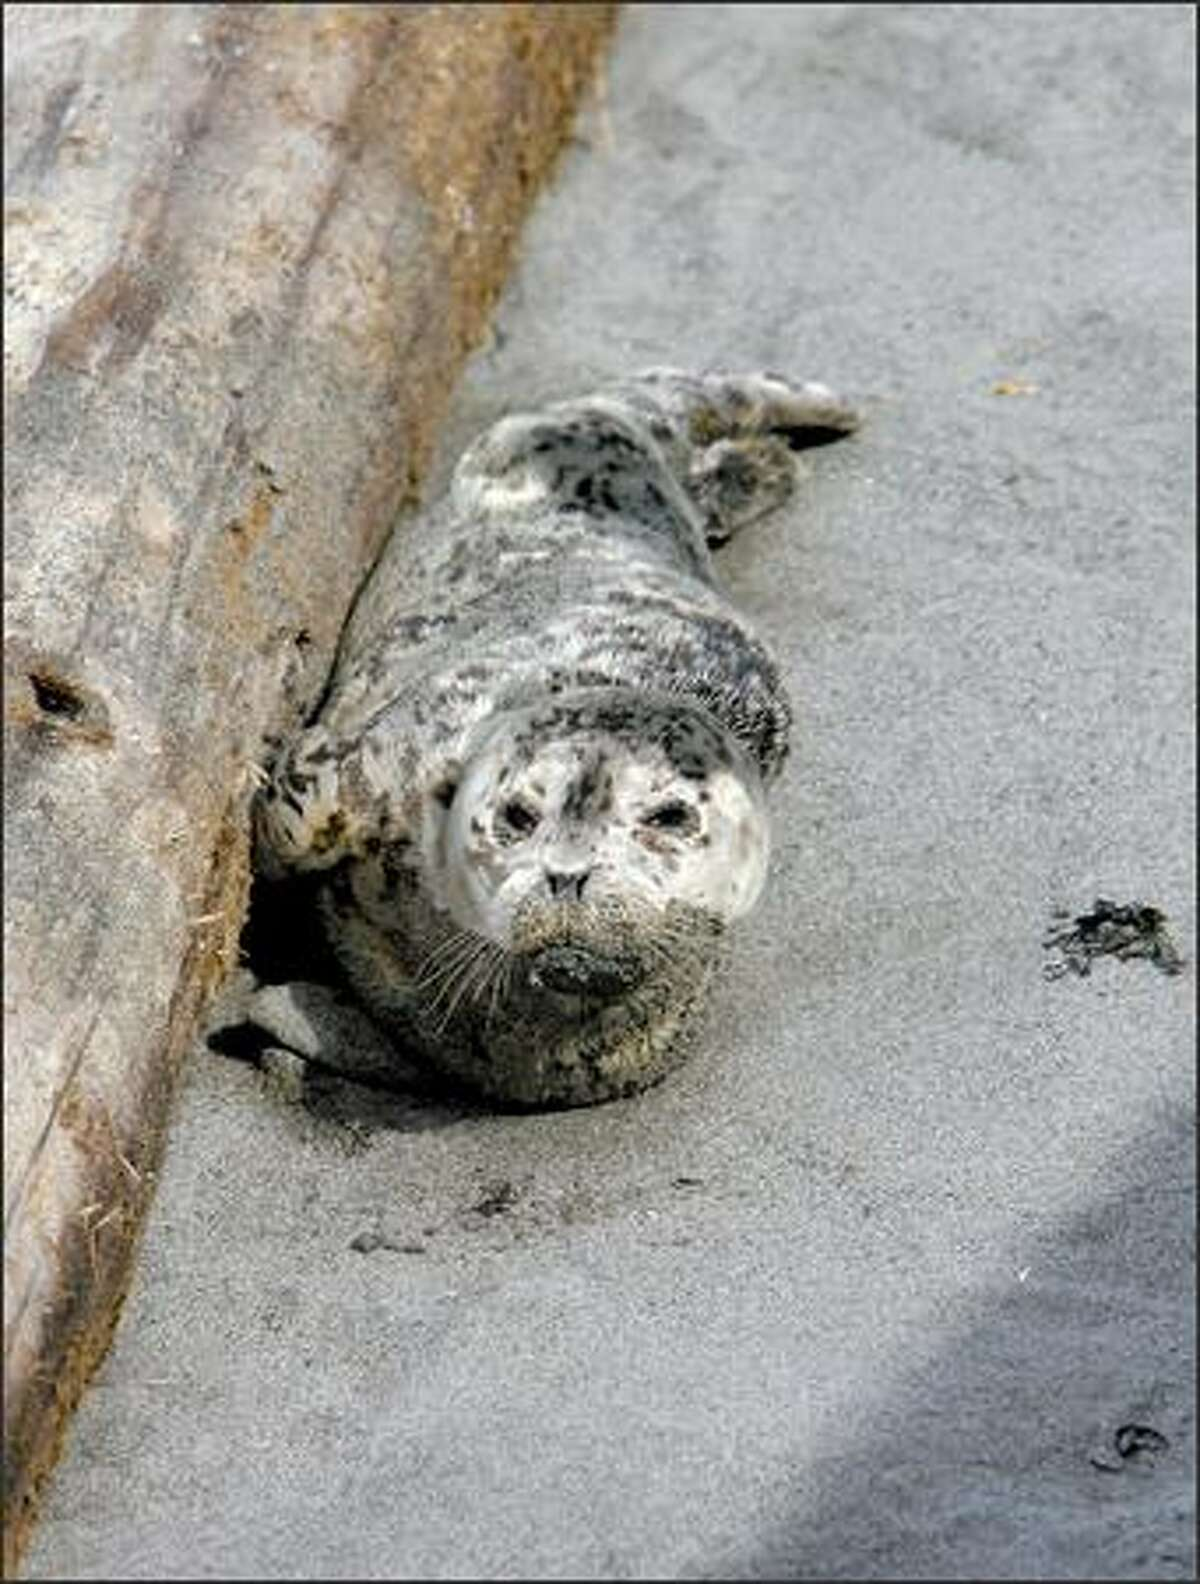 As a baby seal waits Tuesday on Alki Beach while its mother hunts, seal sitters are guarding the pup.